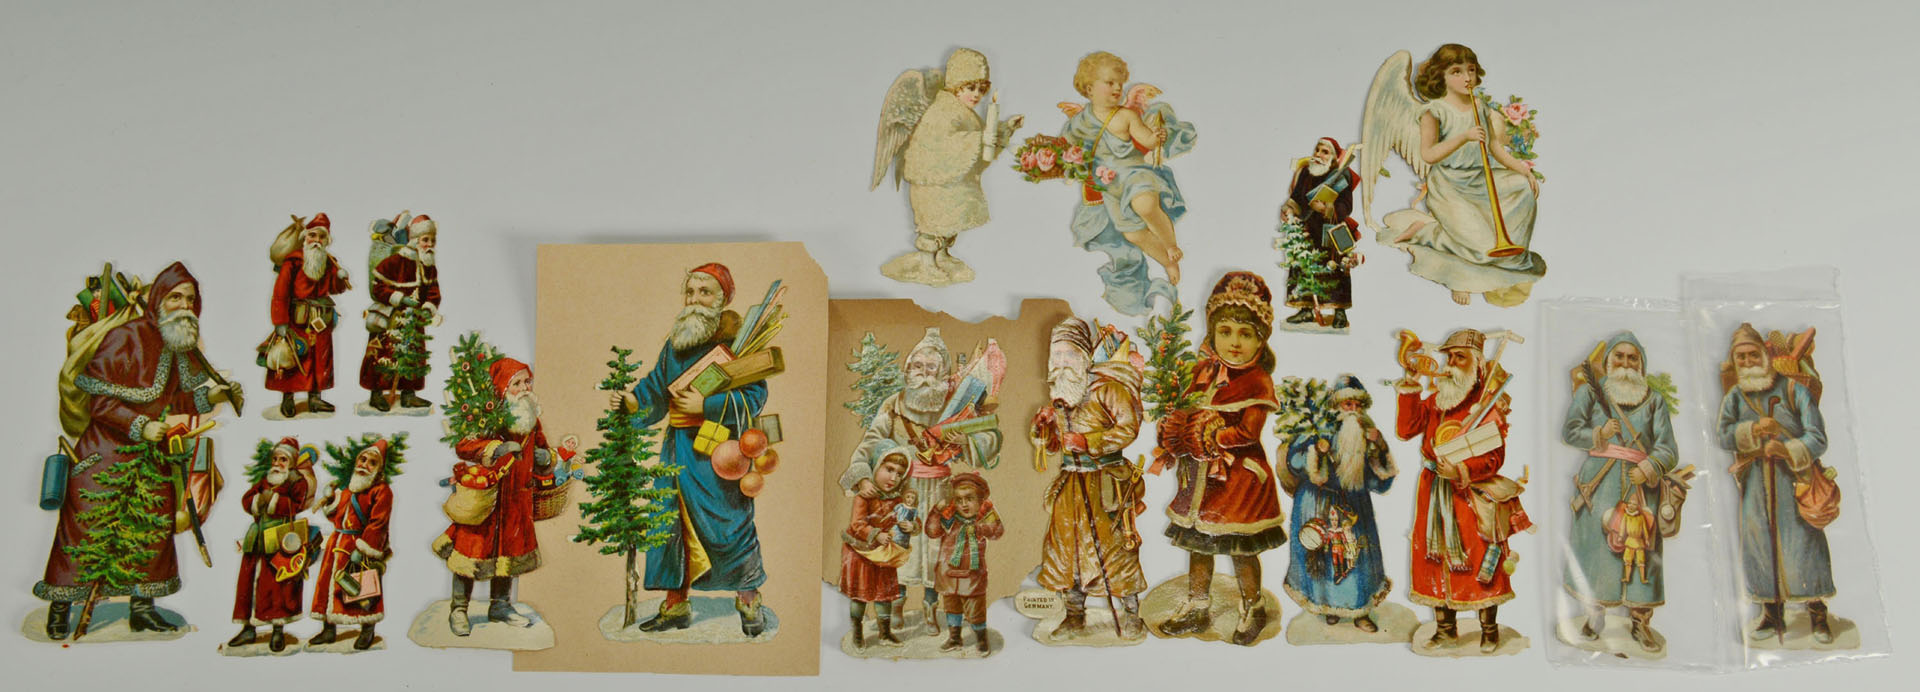 Lot 599: Early German glass Christmas ornaments, other